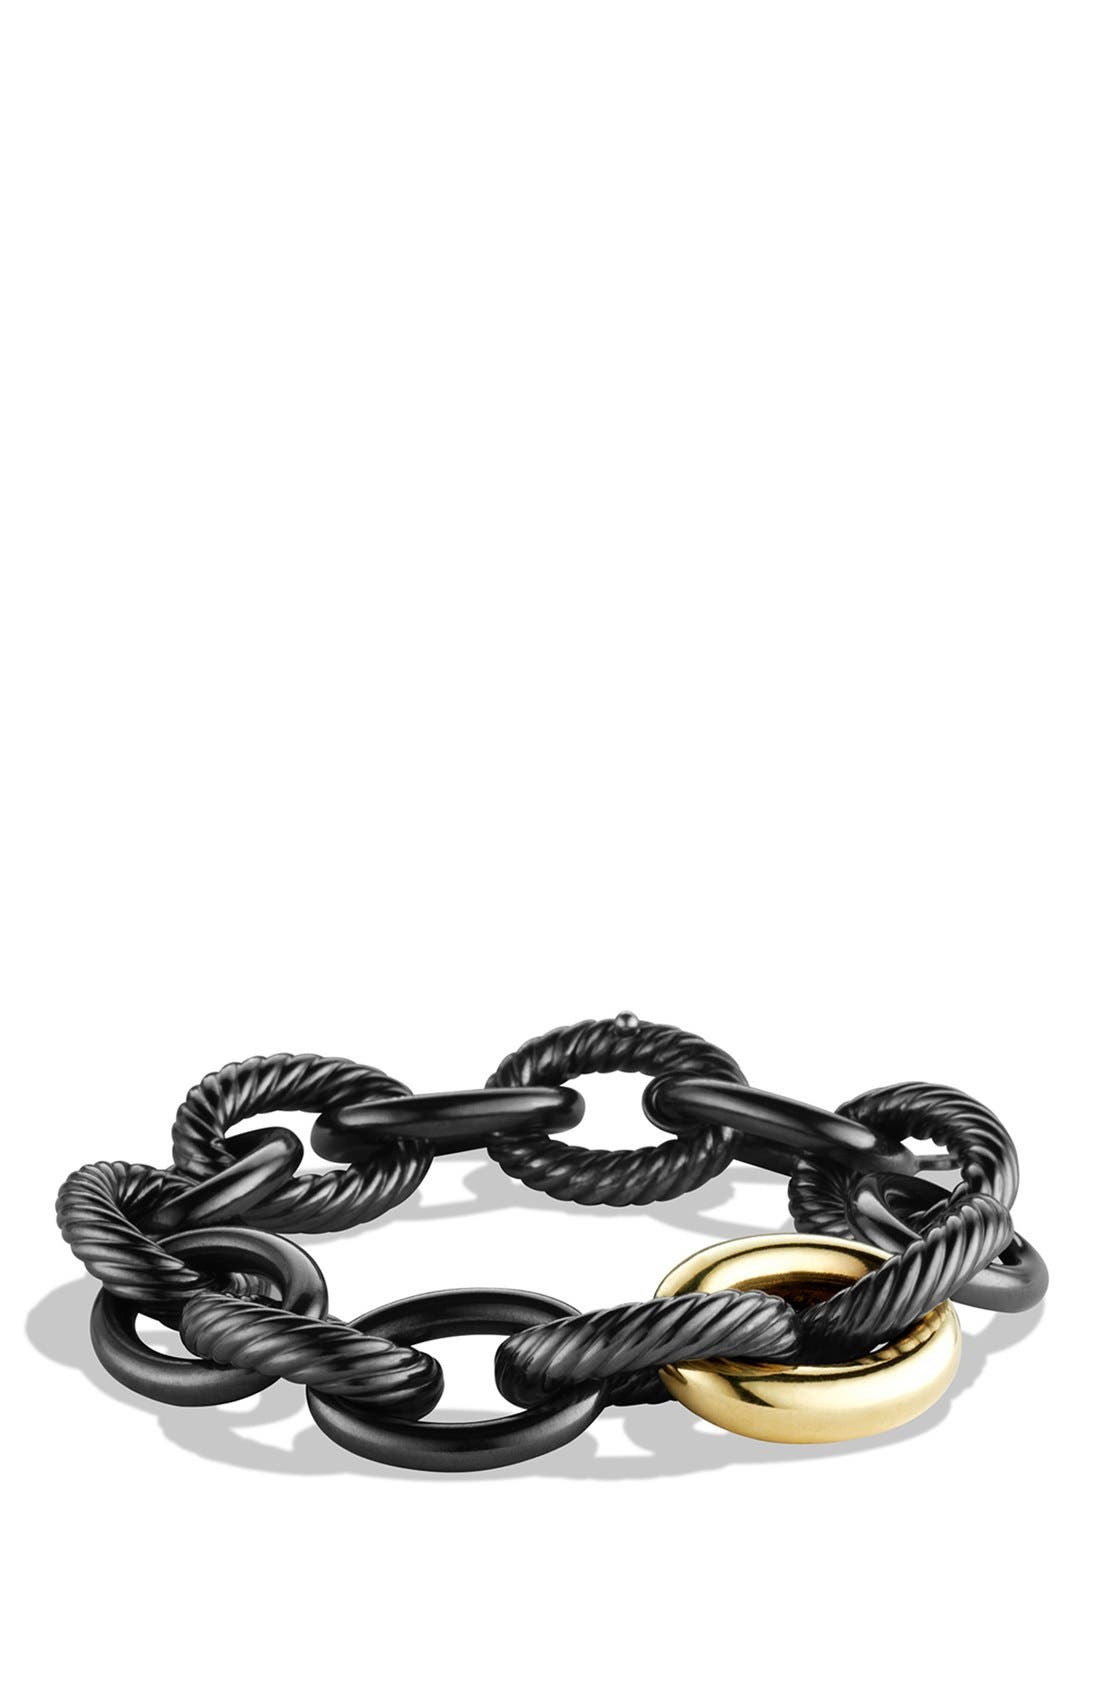 Alternate Image 1 Selected - David Yurman 'Oval' Extra-Large Link Bracelet with Gold